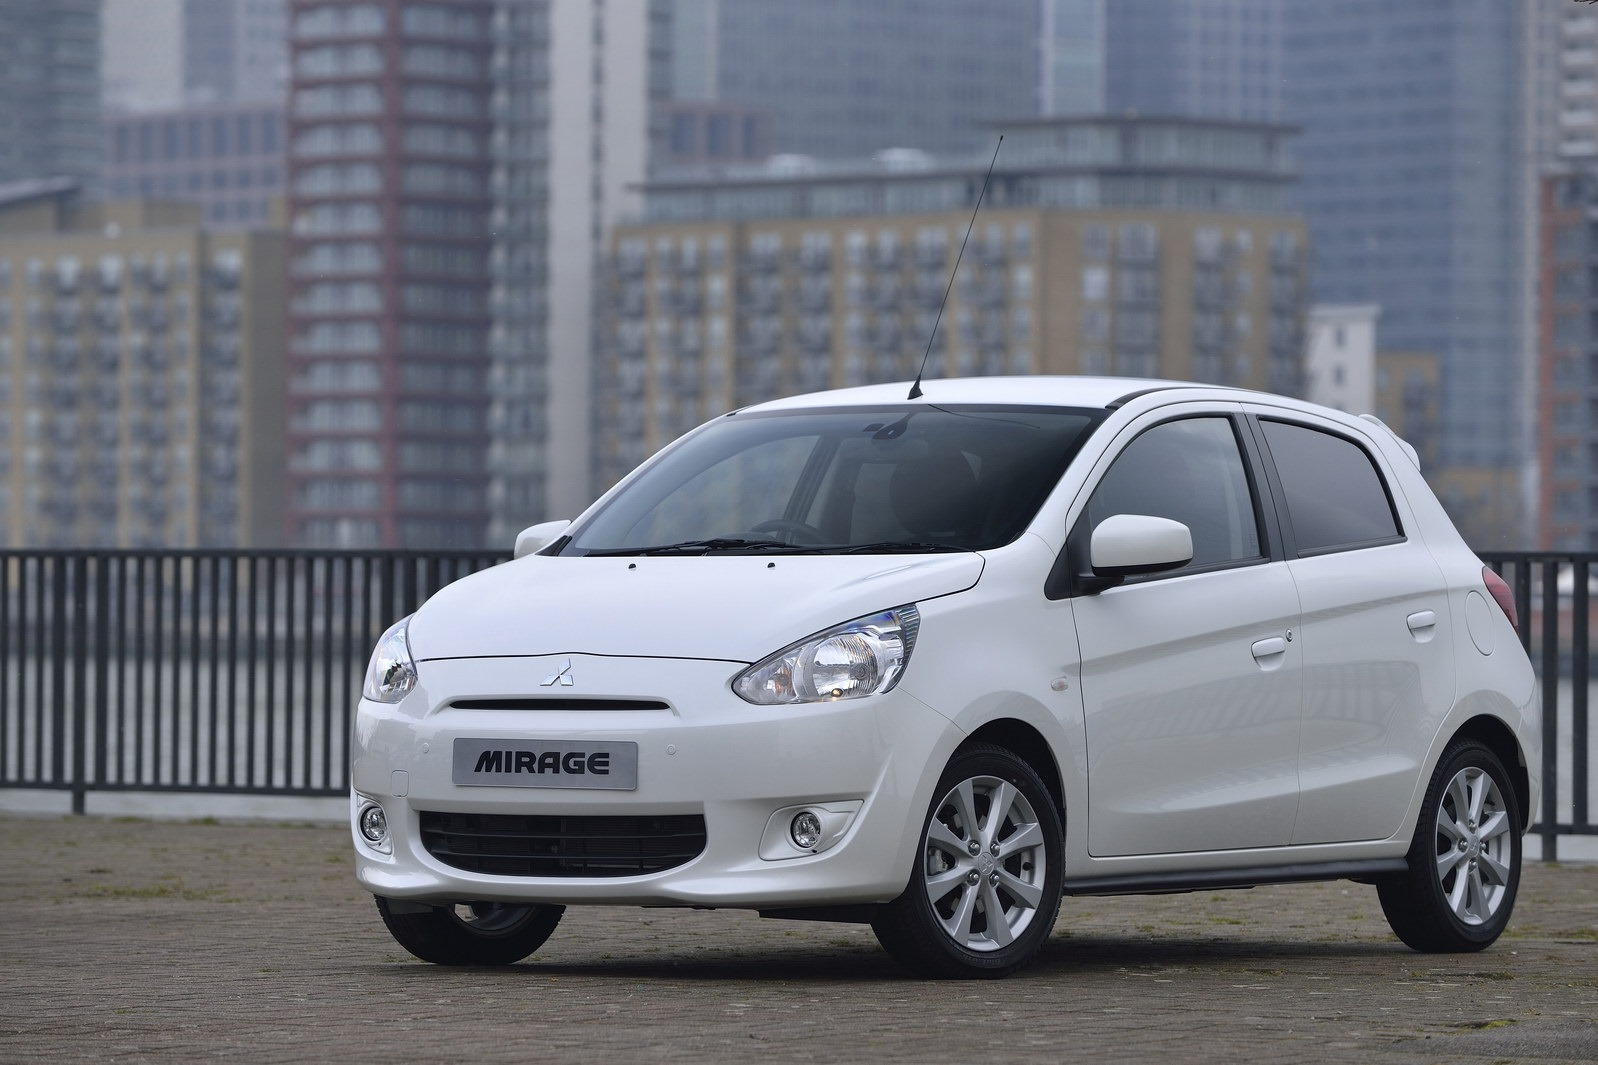 mitsubishi mirage uk prices and specs announced. Black Bedroom Furniture Sets. Home Design Ideas